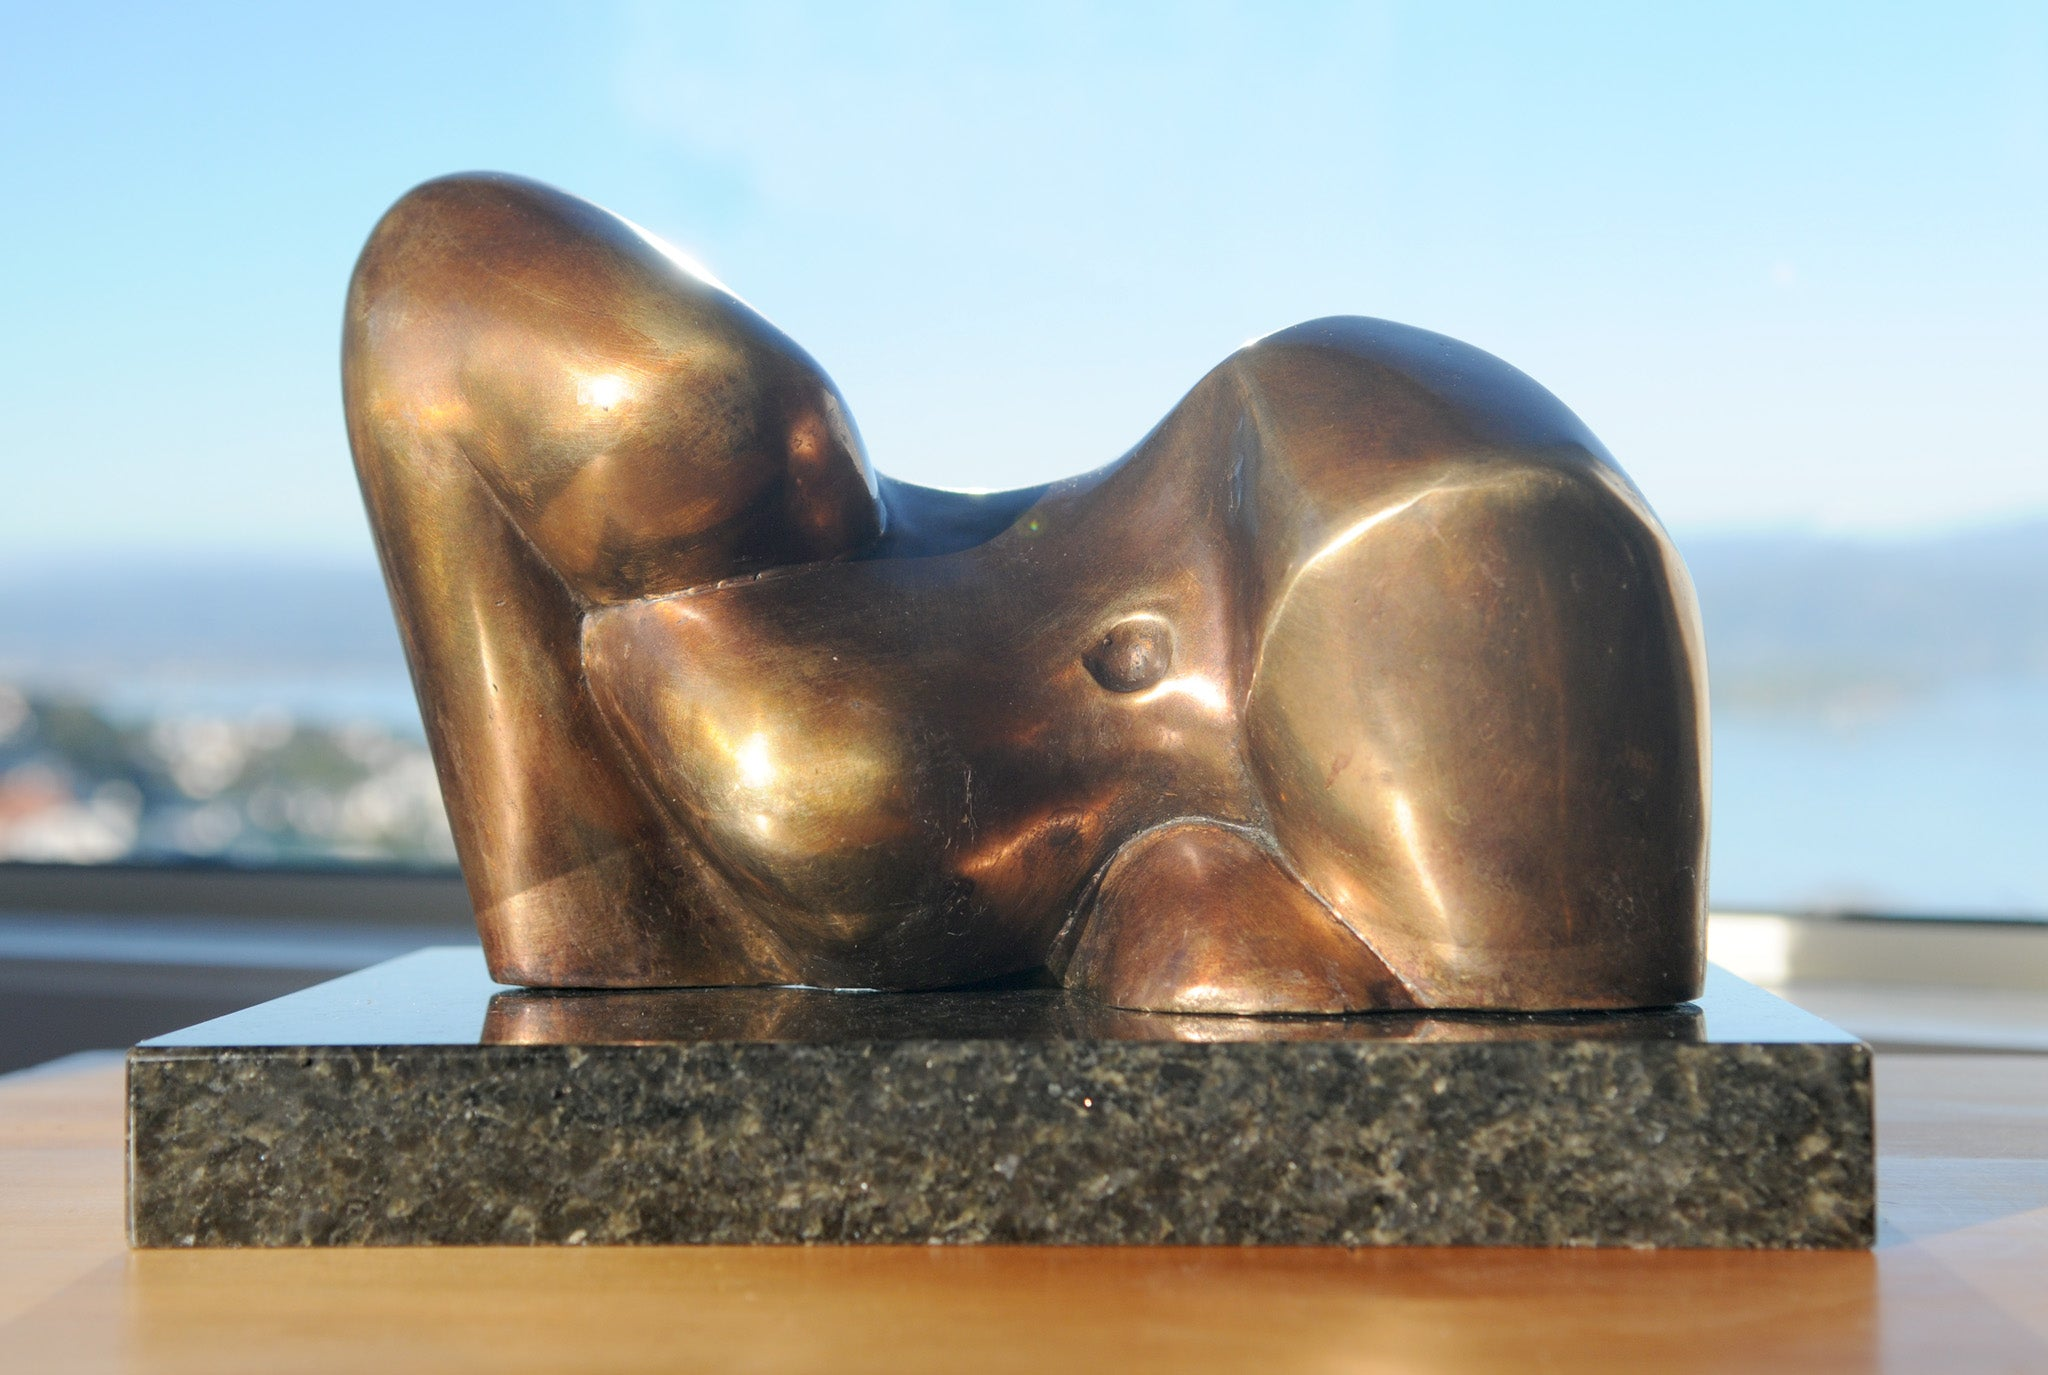 Reclining figure cubist bronze sculpture for sale by Stephen Williams.